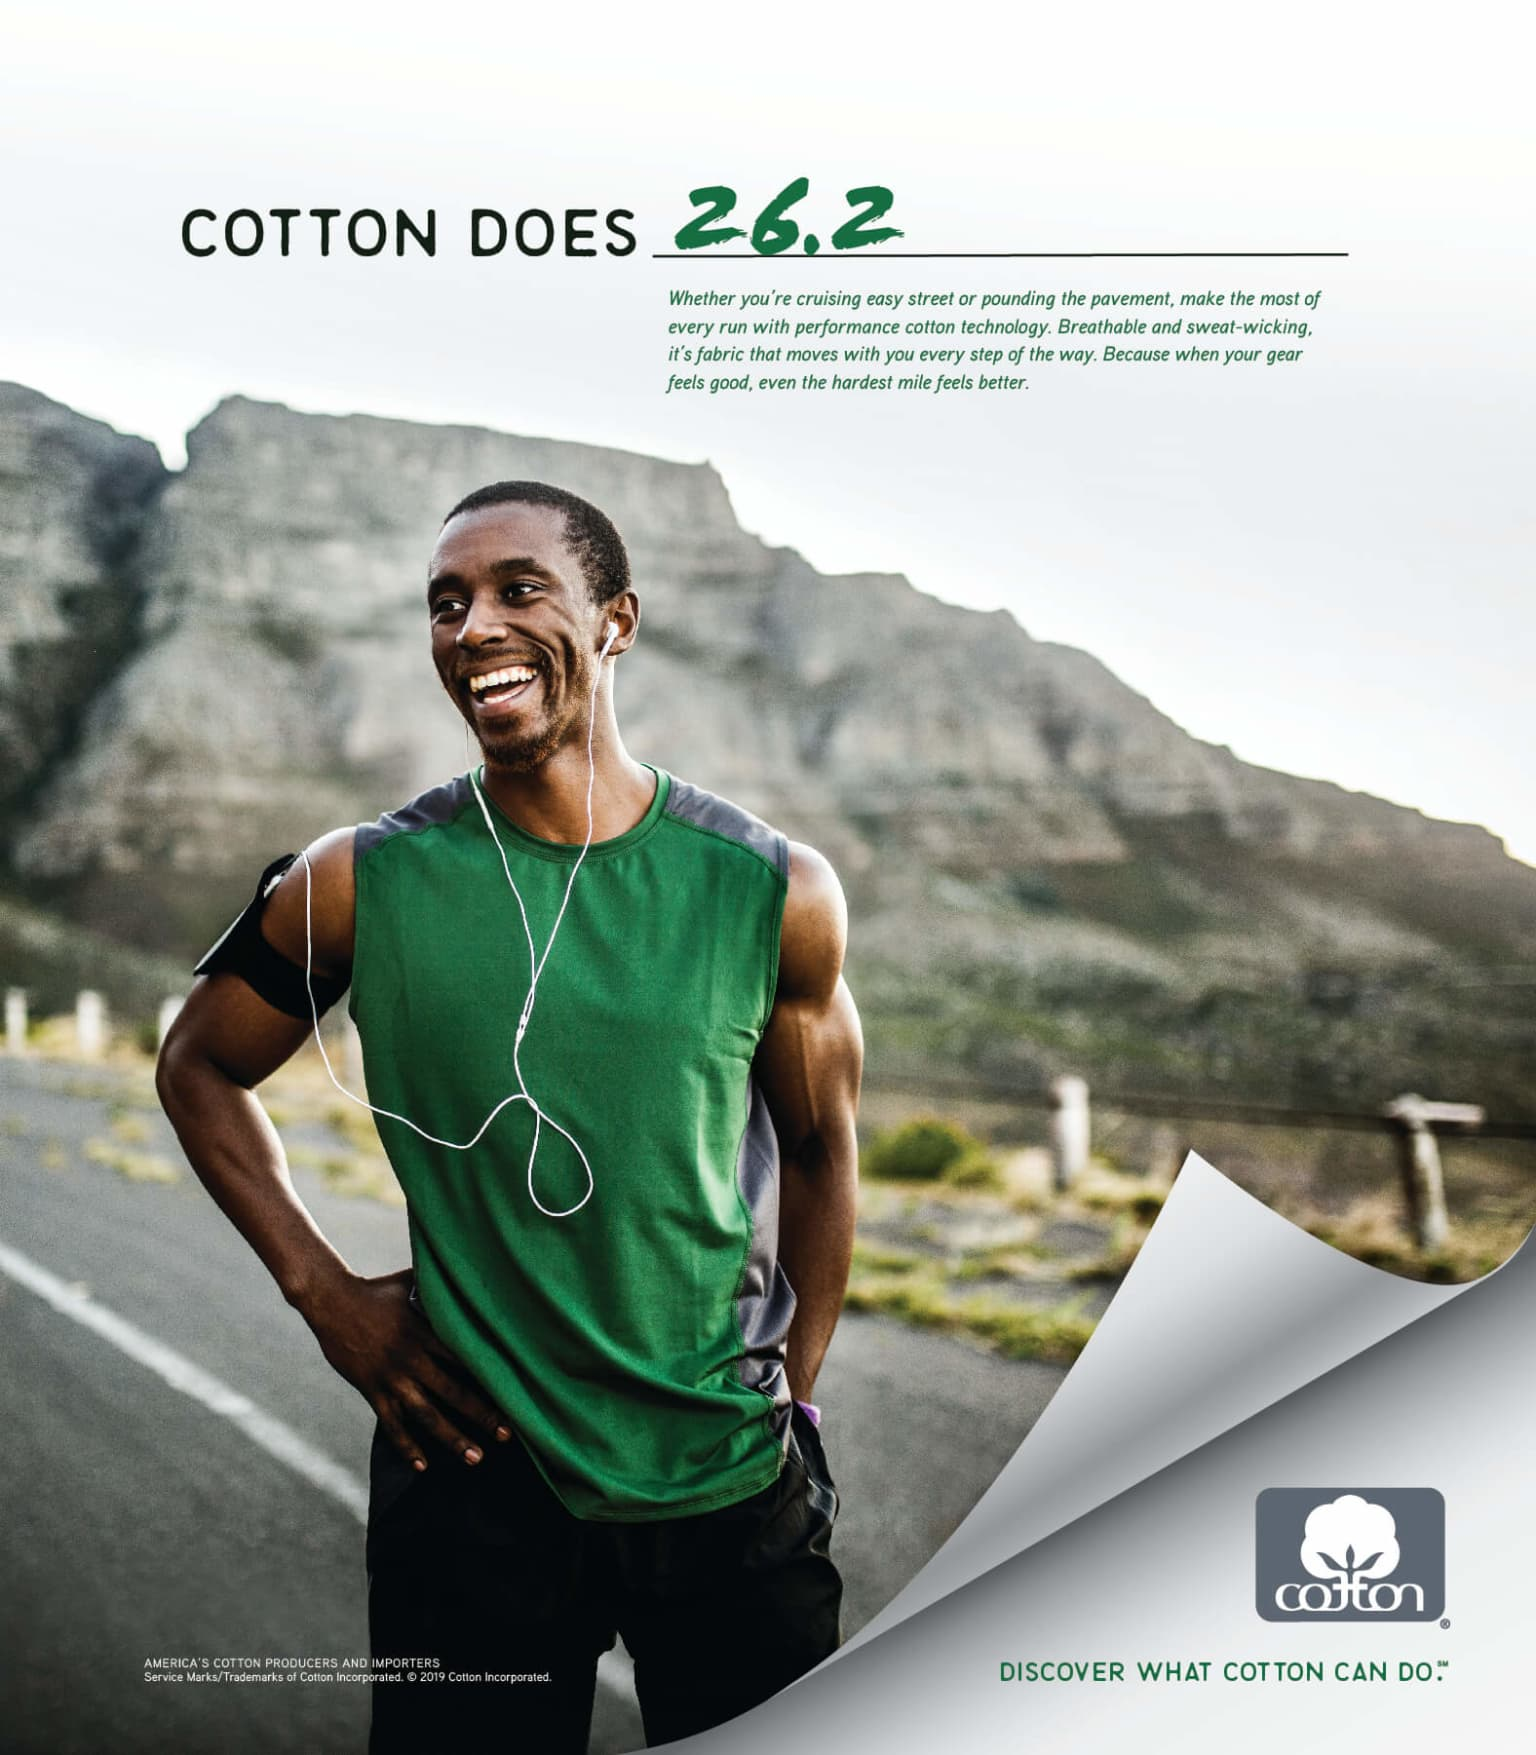 Cotton Incorporated: Cotton Does campaign